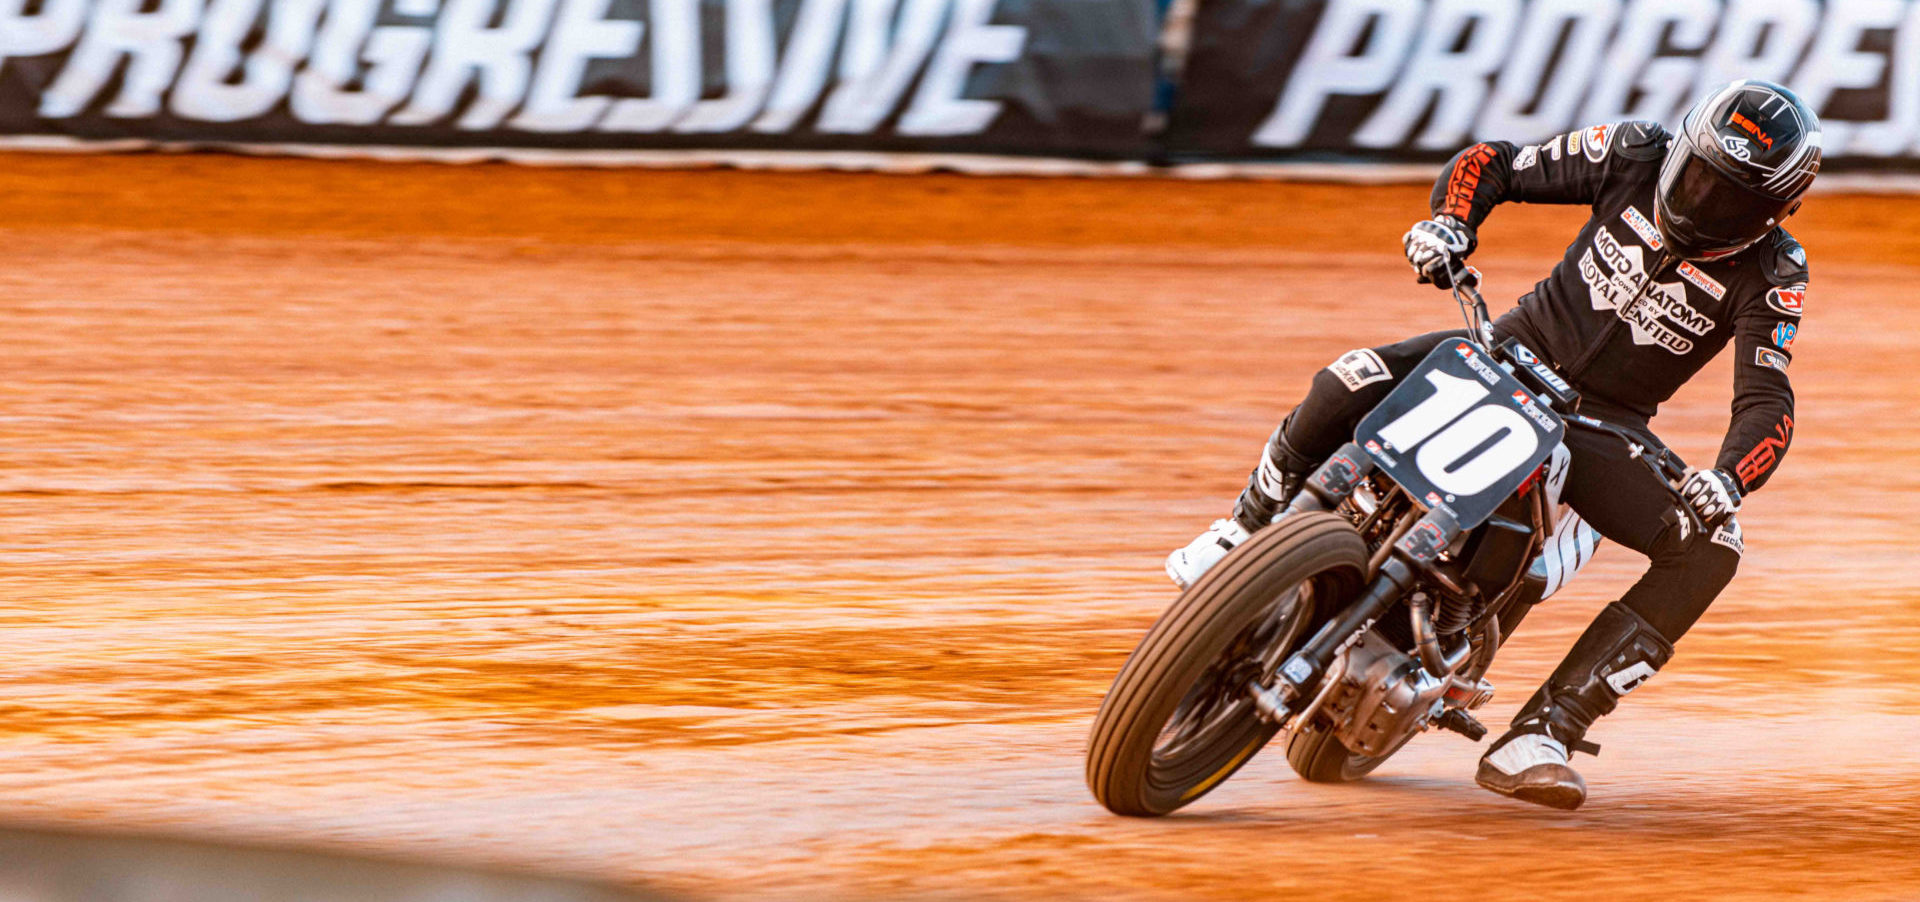 Johnny Lewis (10) on his Royal Enfield flat track racebike. Photo courtesy Royal Enfield.